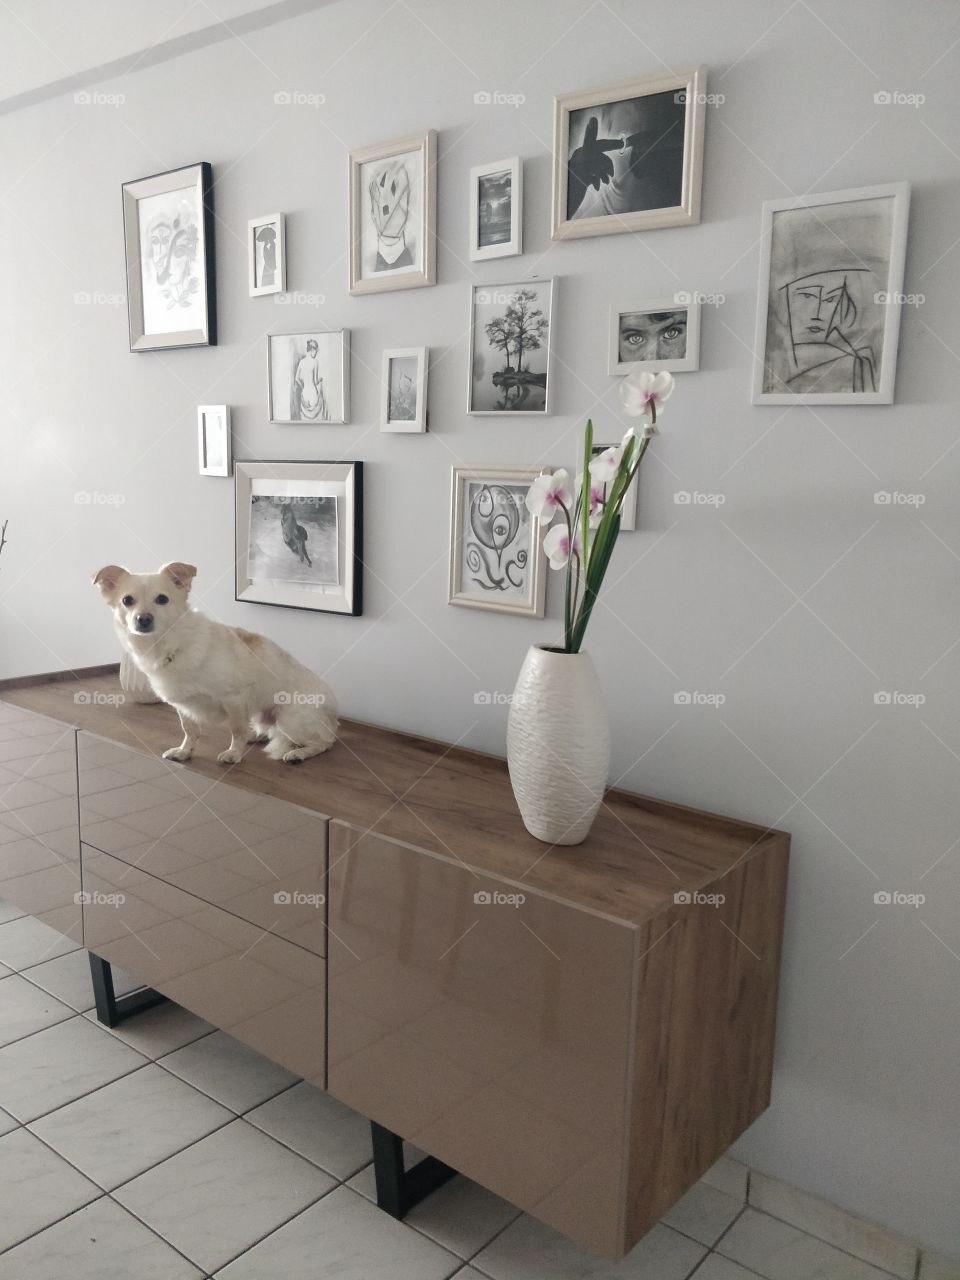 Cute dog sitting on the buffet cabinet in the living room